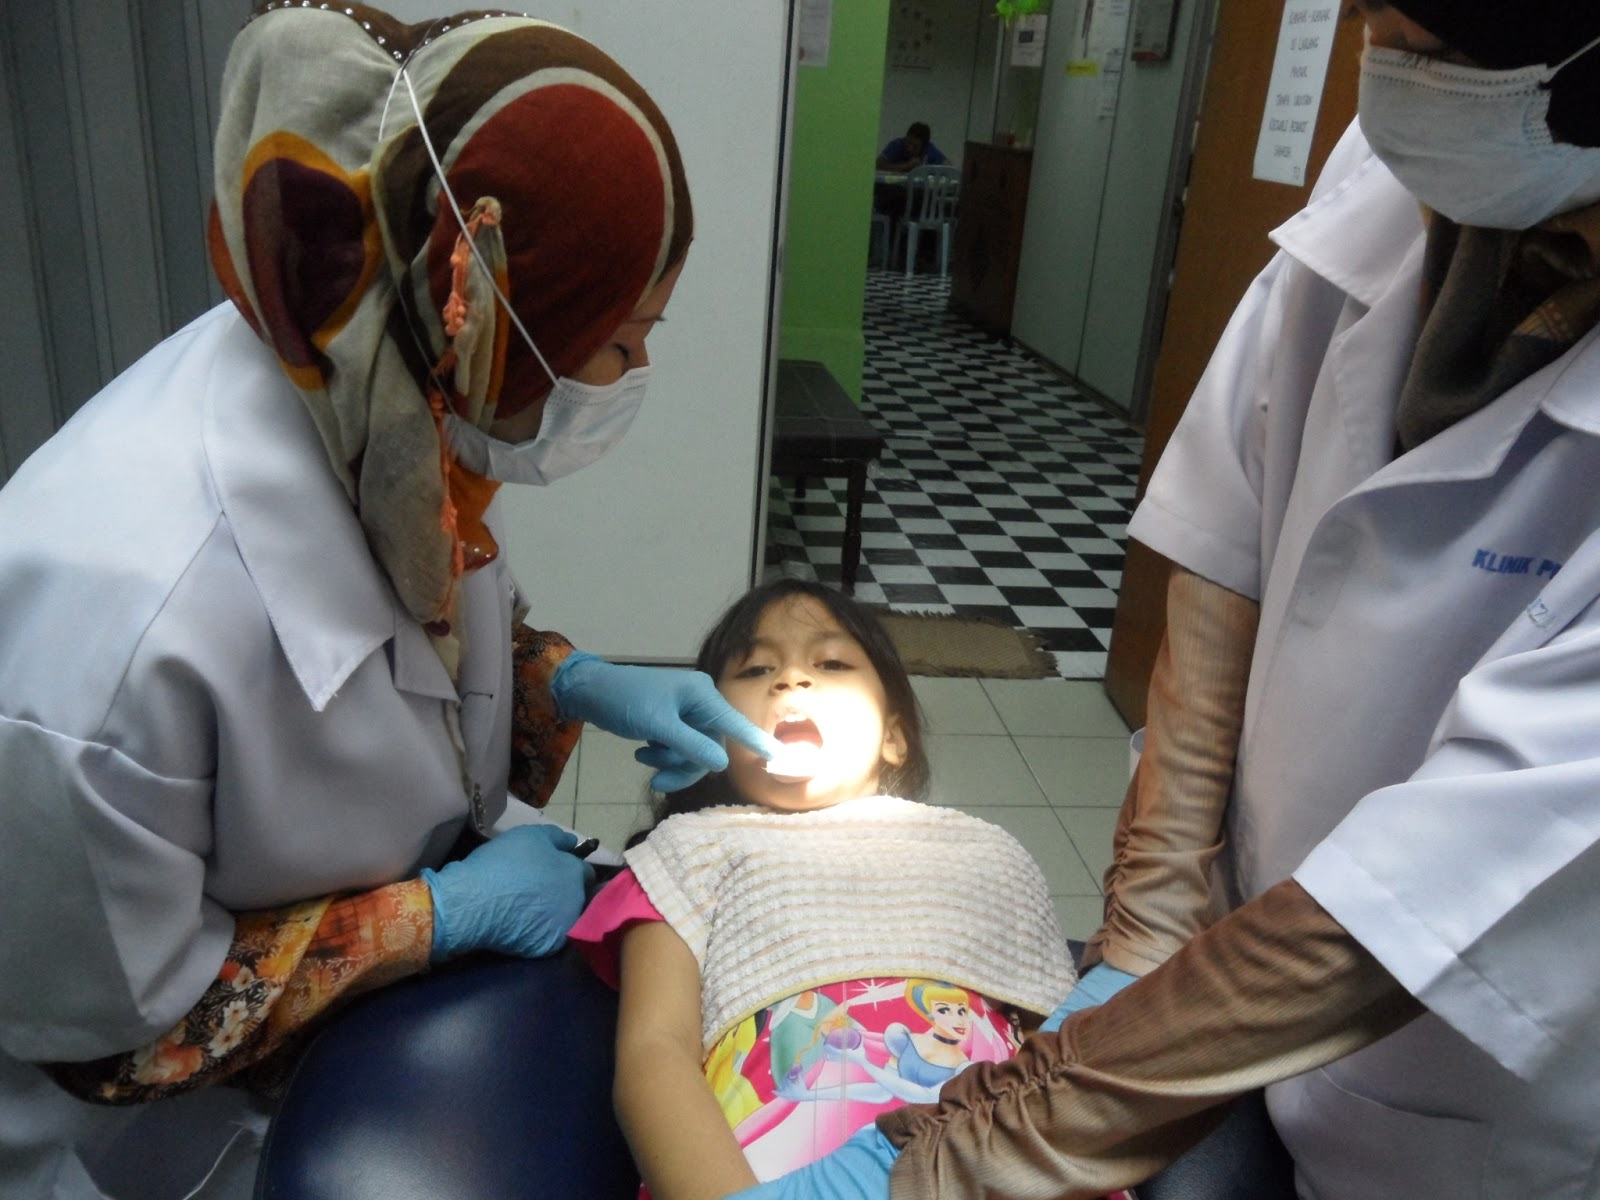 im dating my dentist So how should i make proper advances towards my dentist  a new dentist if you're going to start dating could be  dentist nowadays, if i''m.